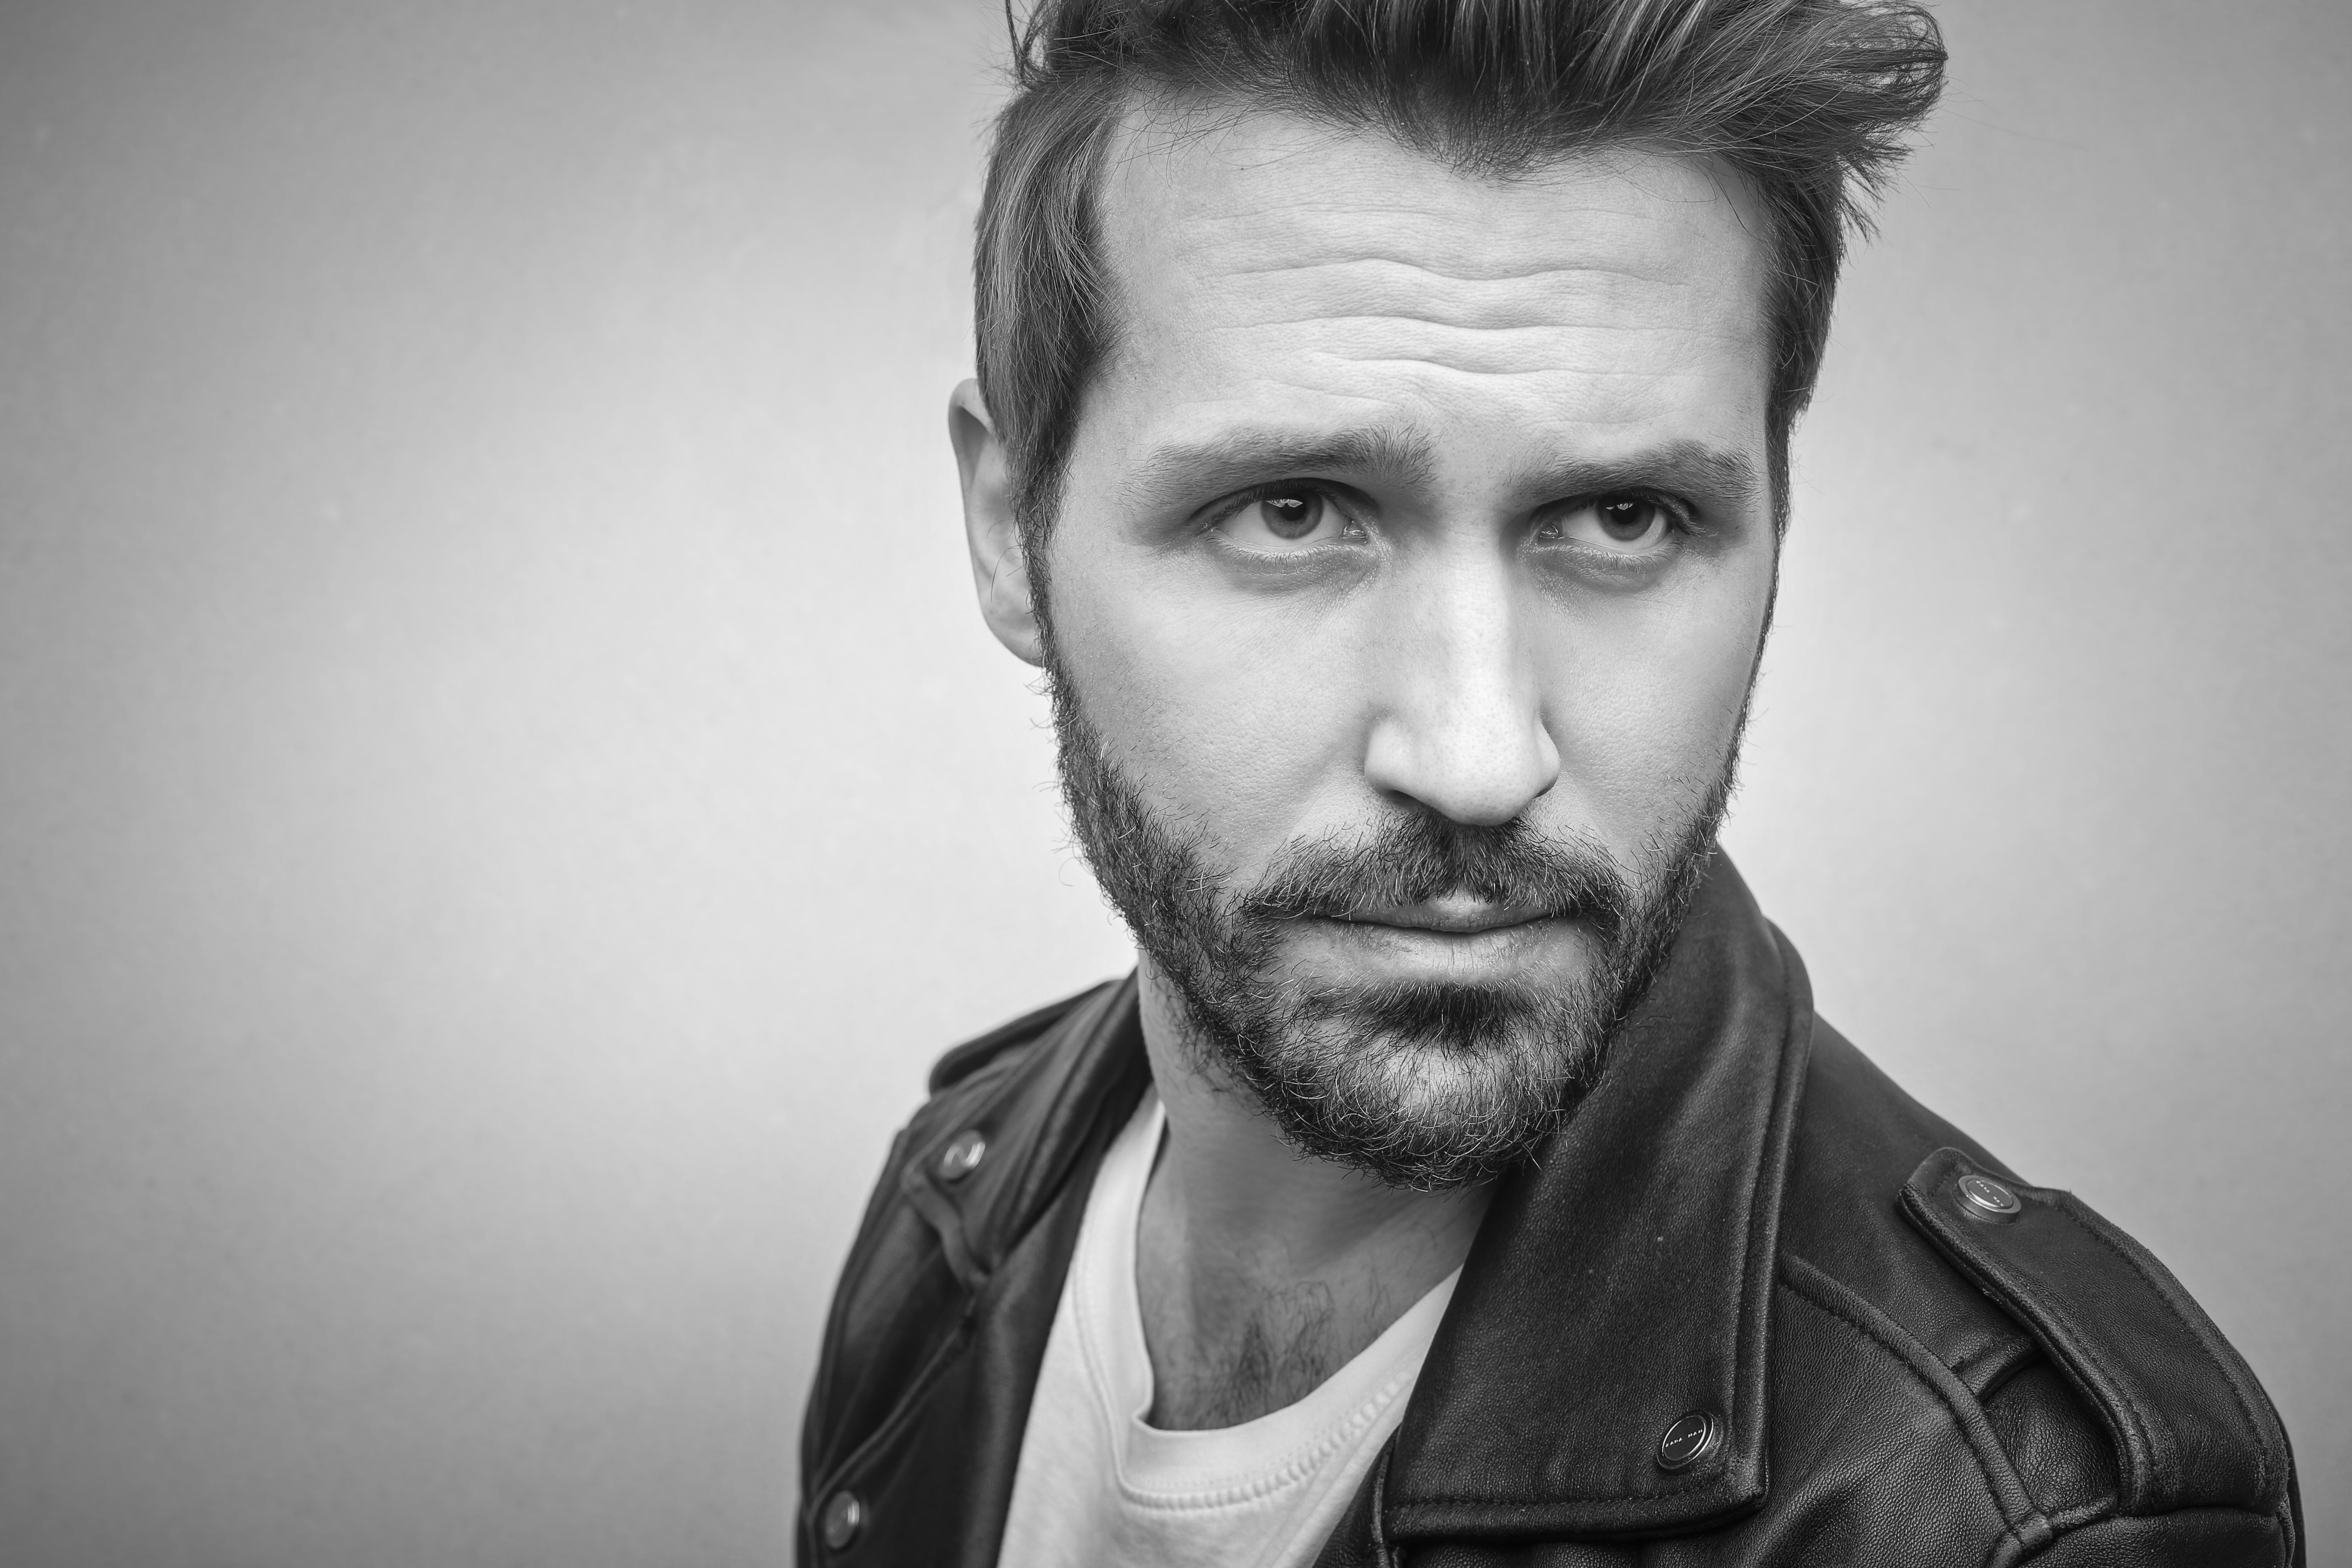 Bearded Man Wearing Black Leather Jacket